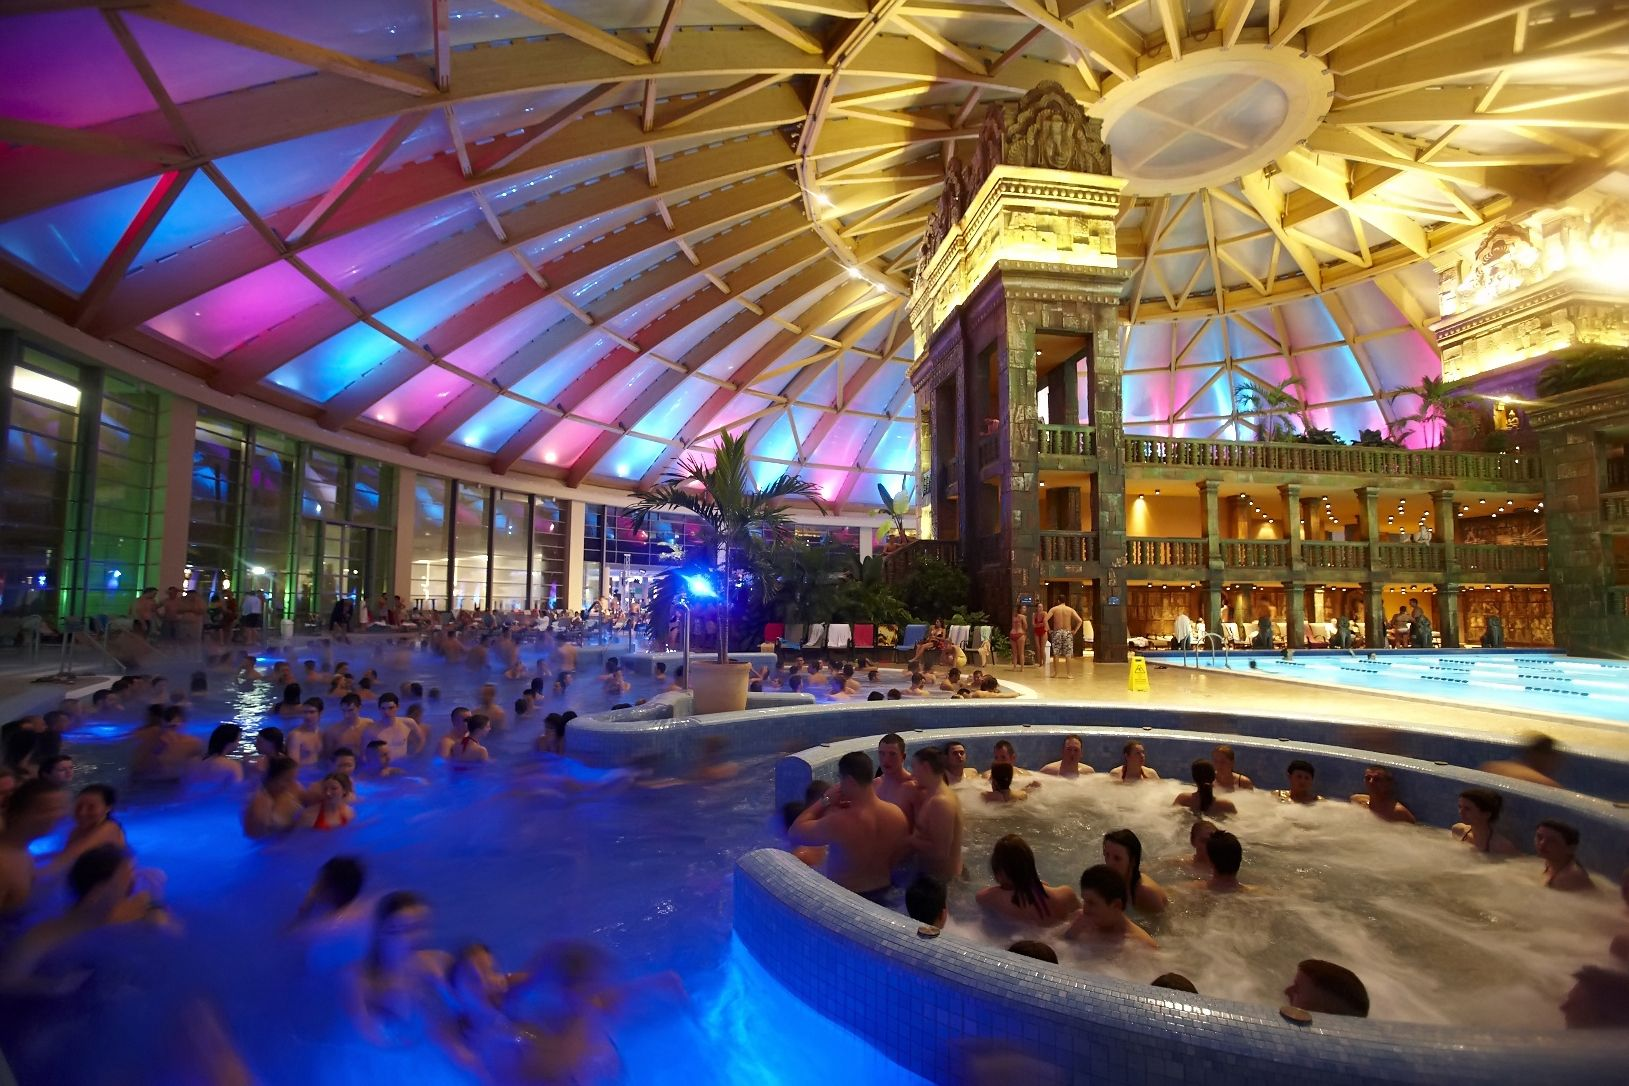 Night splash party at the spa aqua world budapest for A list salon budapest